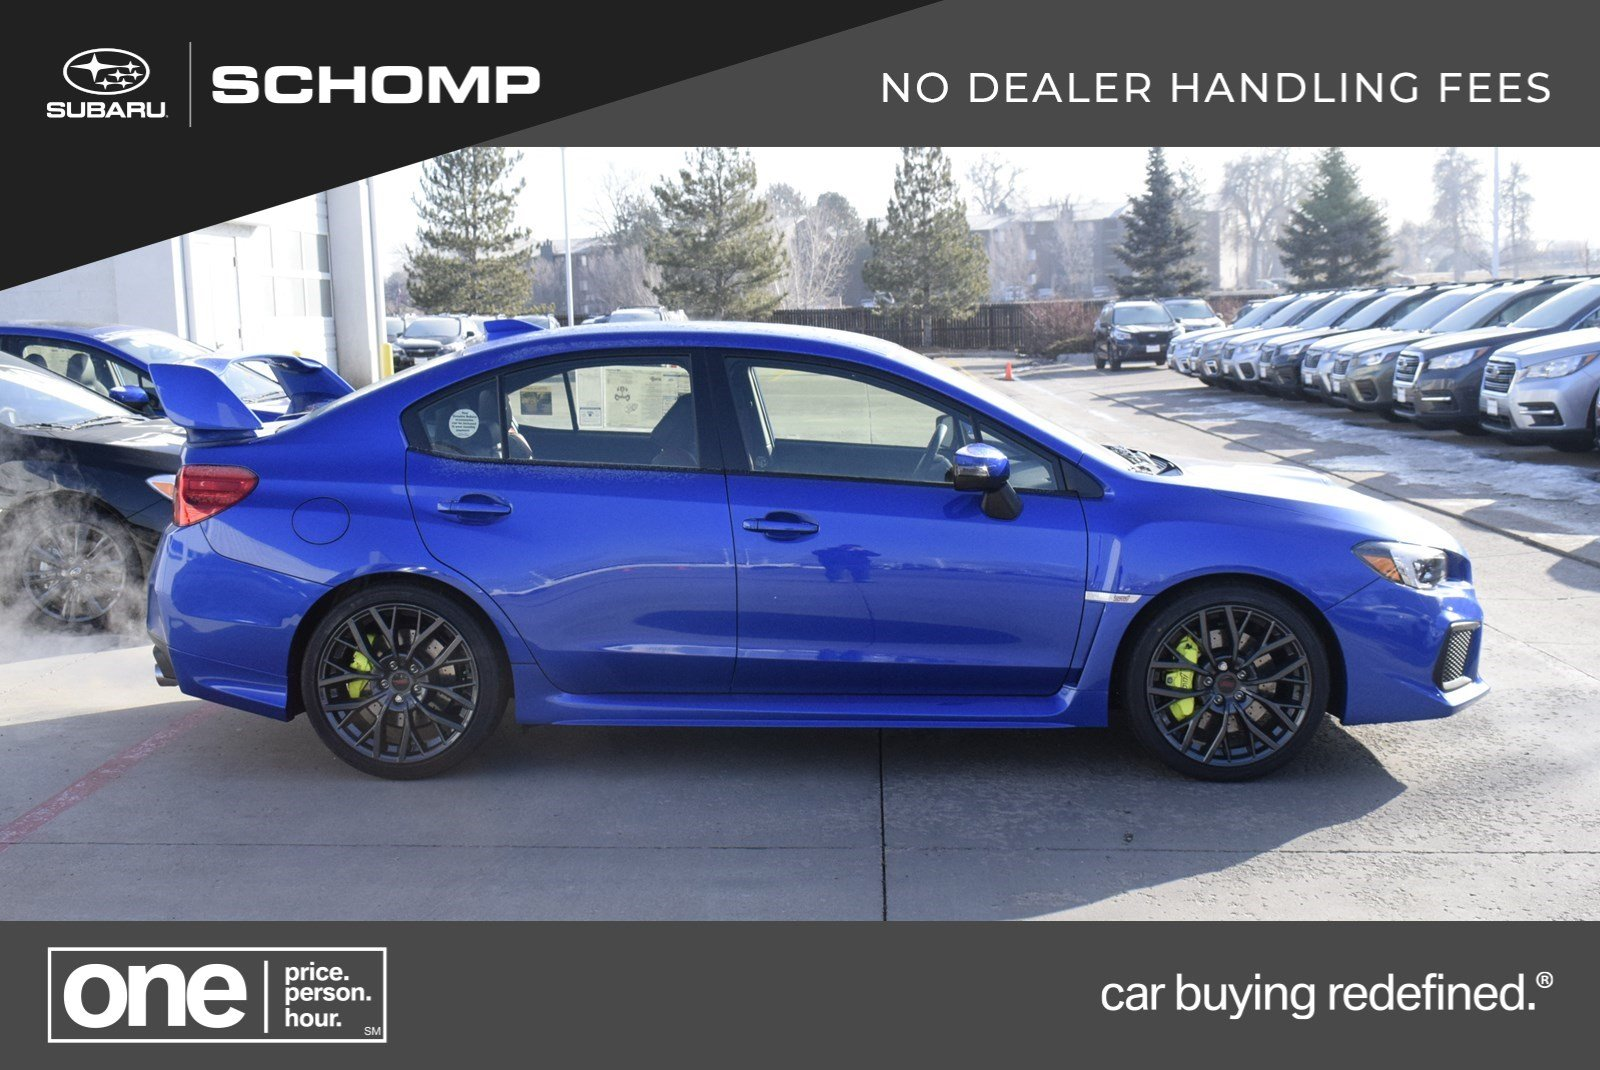 New 2019 Subaru Wrx Sti 4dr Car In 6s91357 Schomp Automotive Group